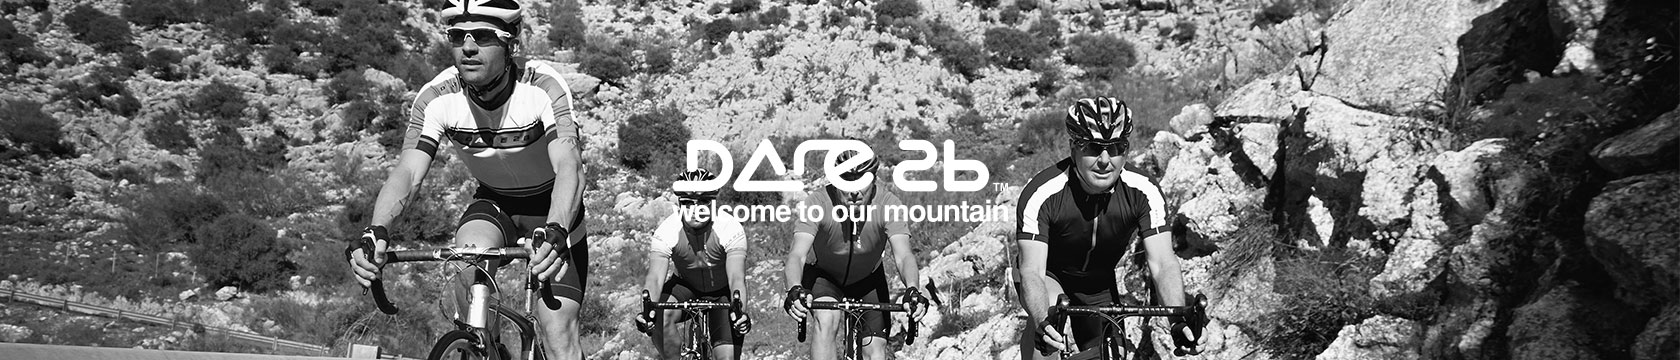 Group of cyclists wearing Dare2b clothes